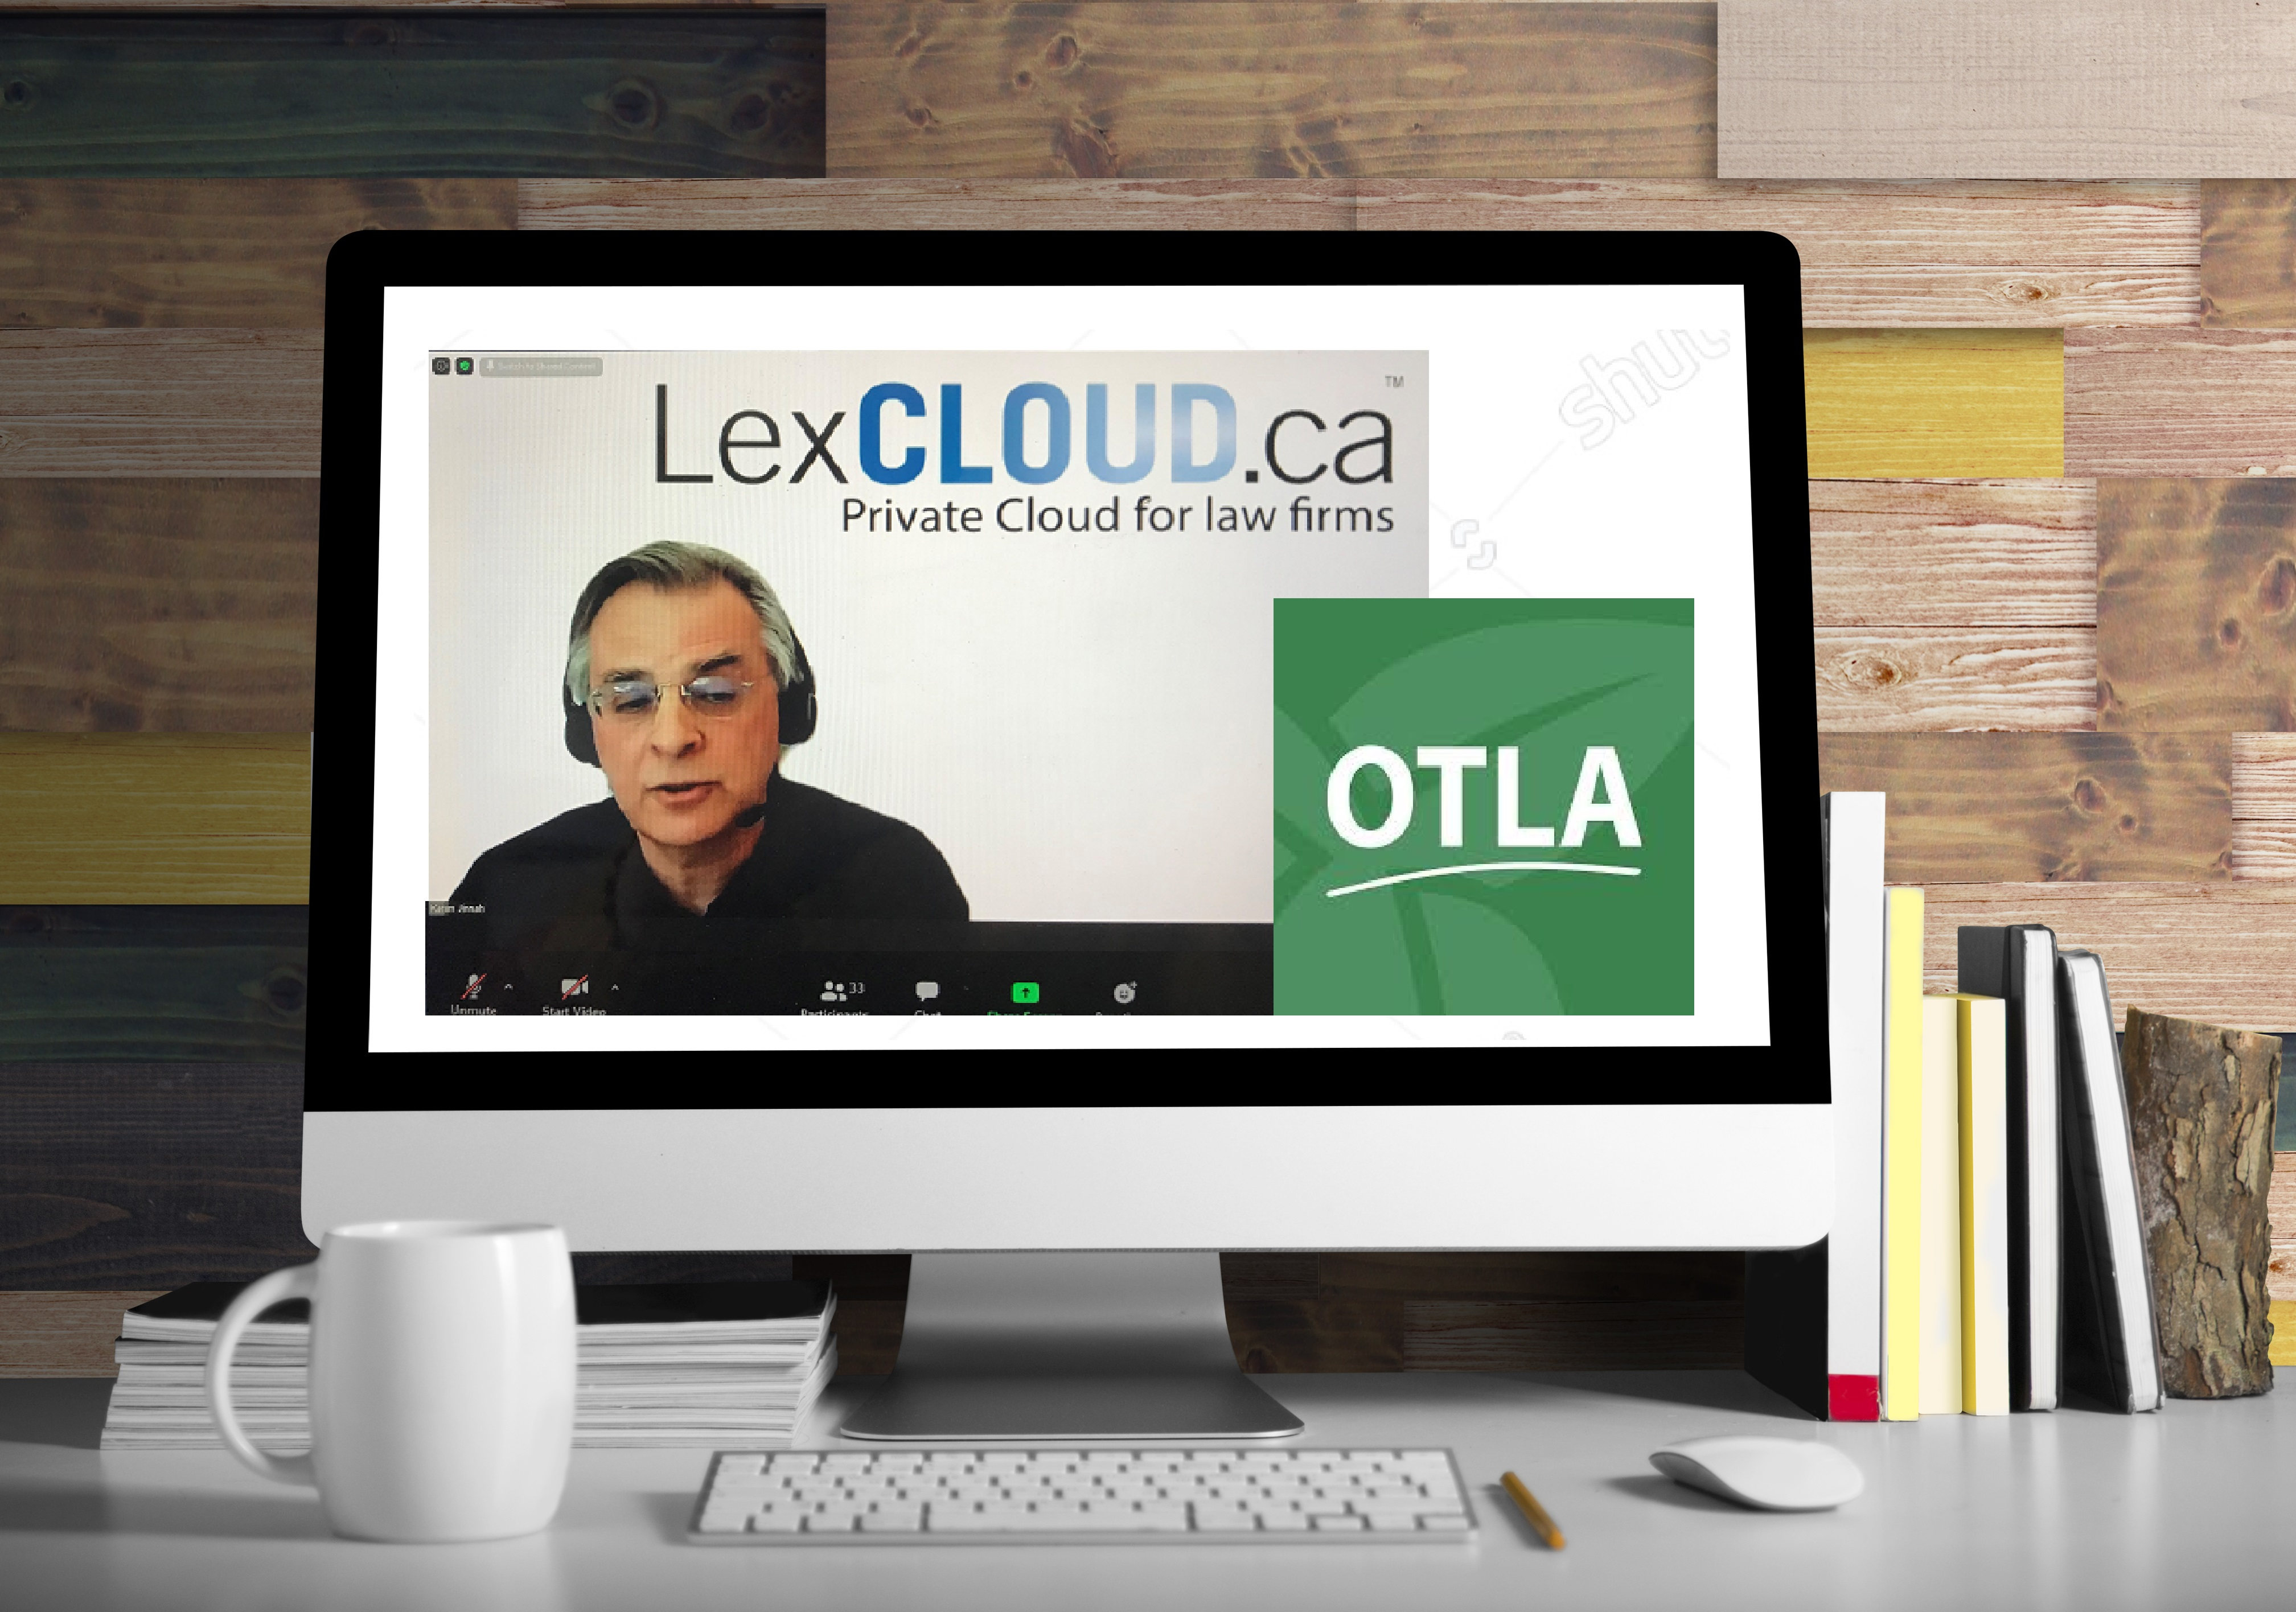 LexCloud.ca Sponsors OTLA Roundtable on Practice Management During COVID-19